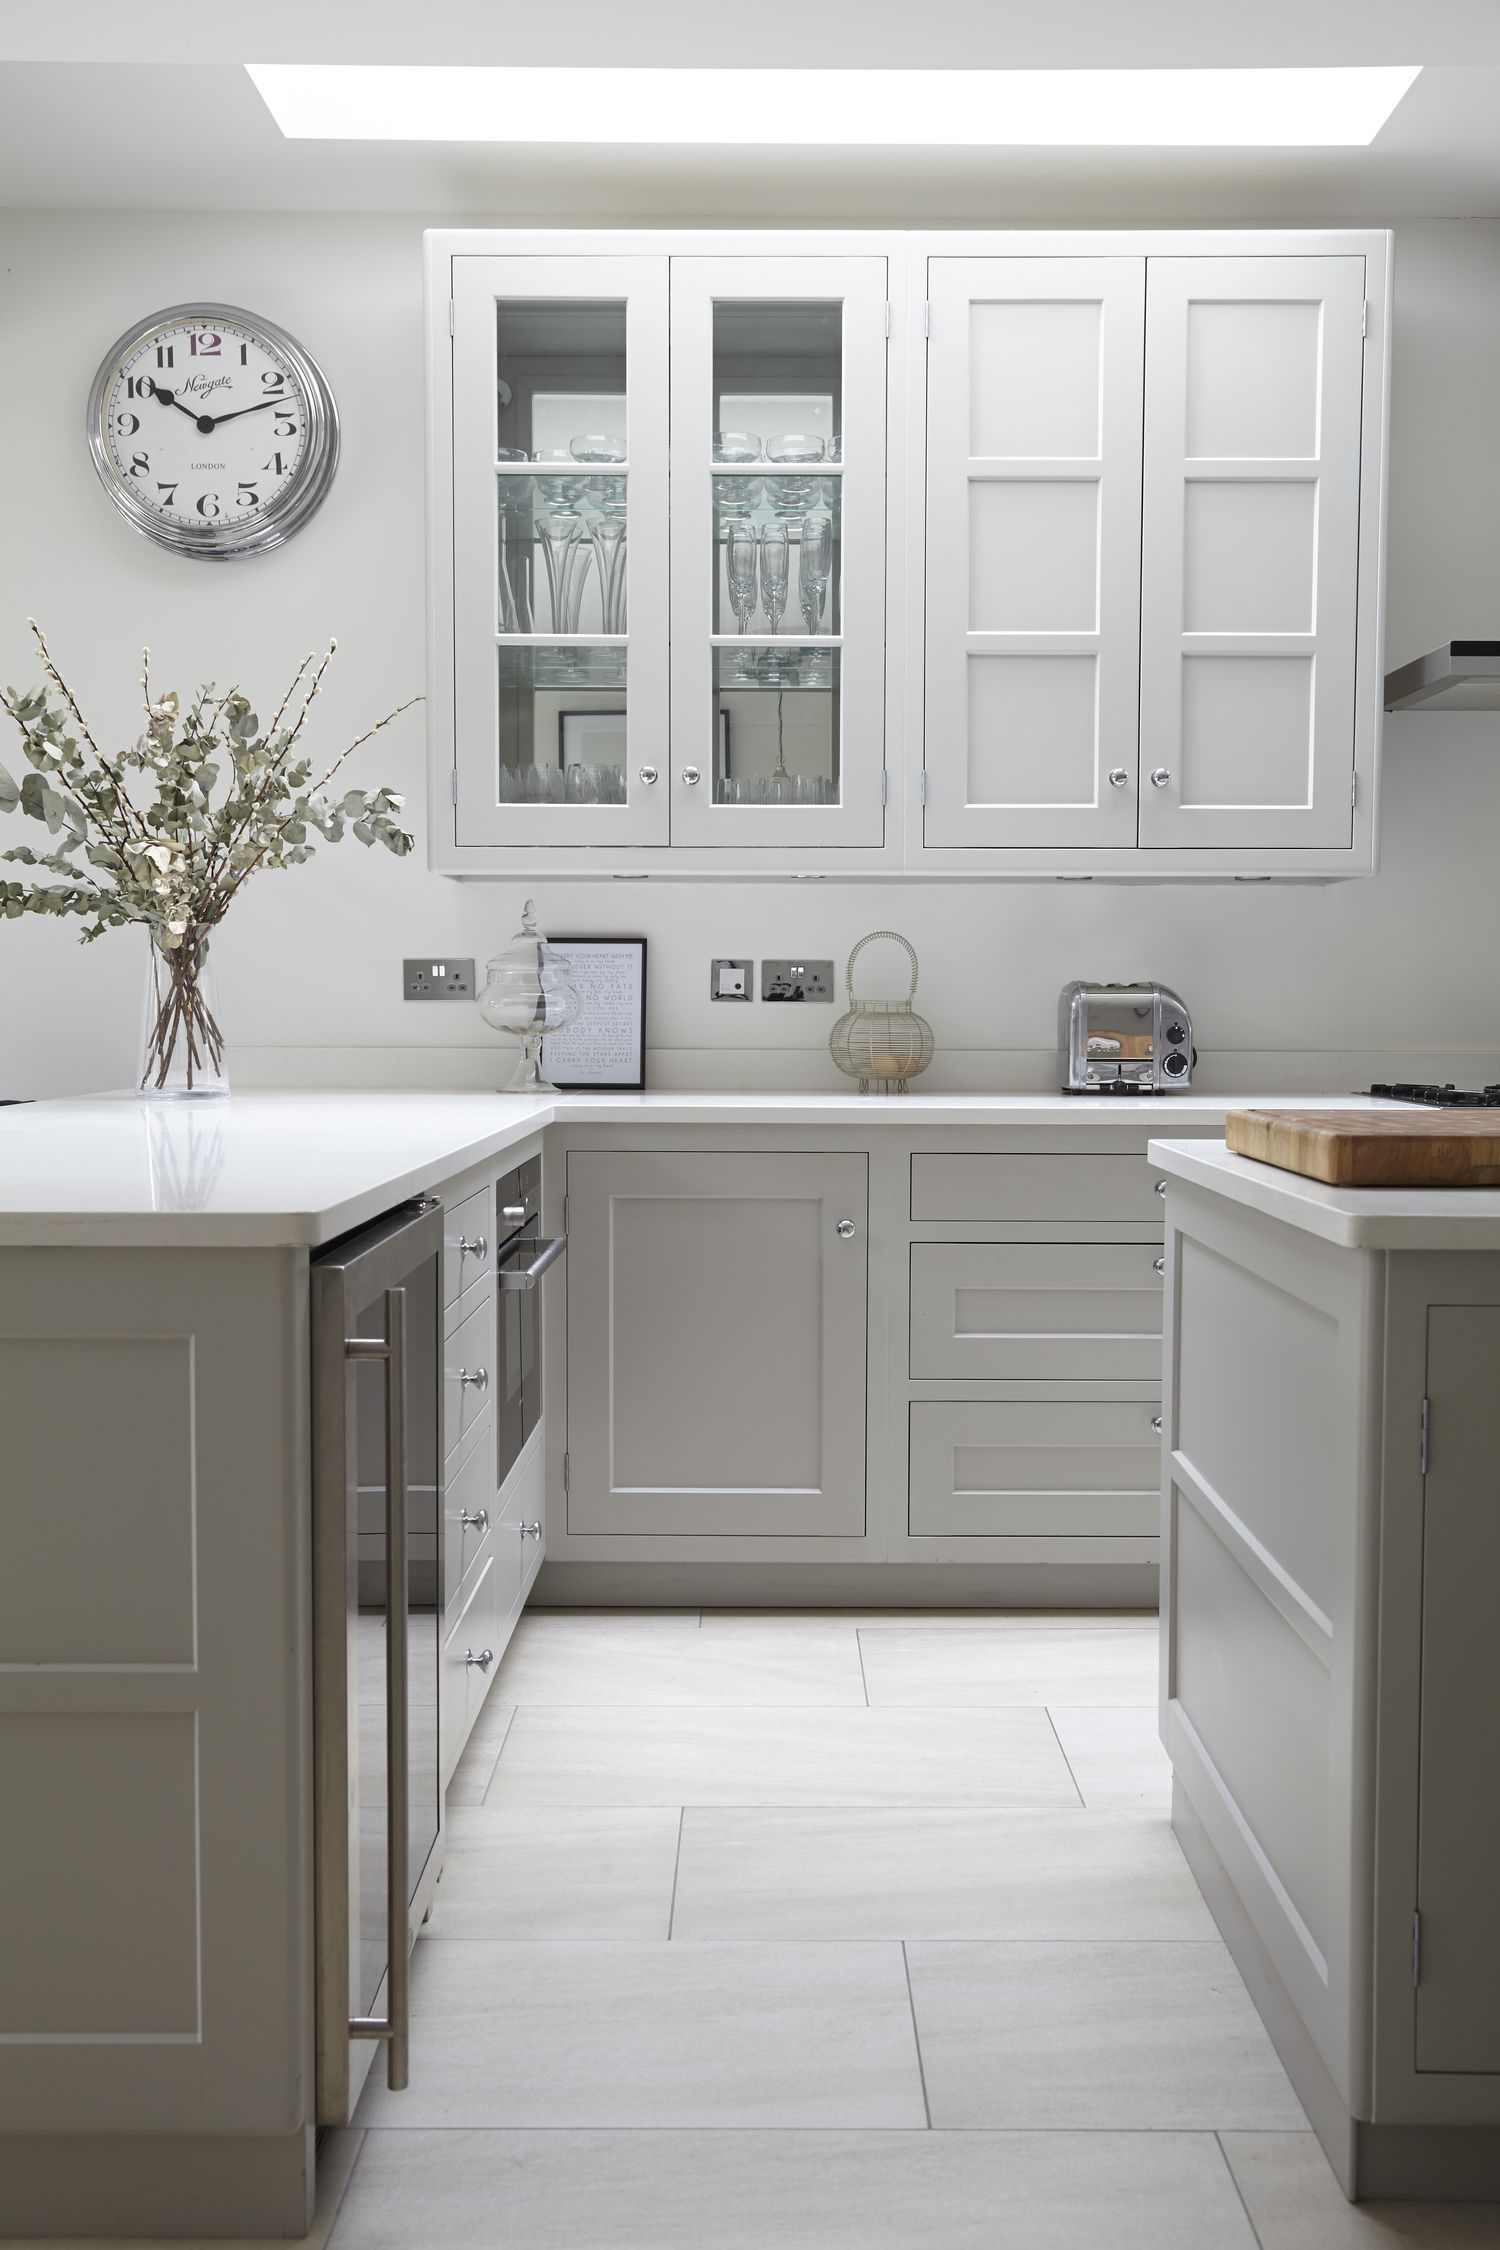 9+ Ideas Model Kitchen Cabinets That is Simple   Neat Fast ...